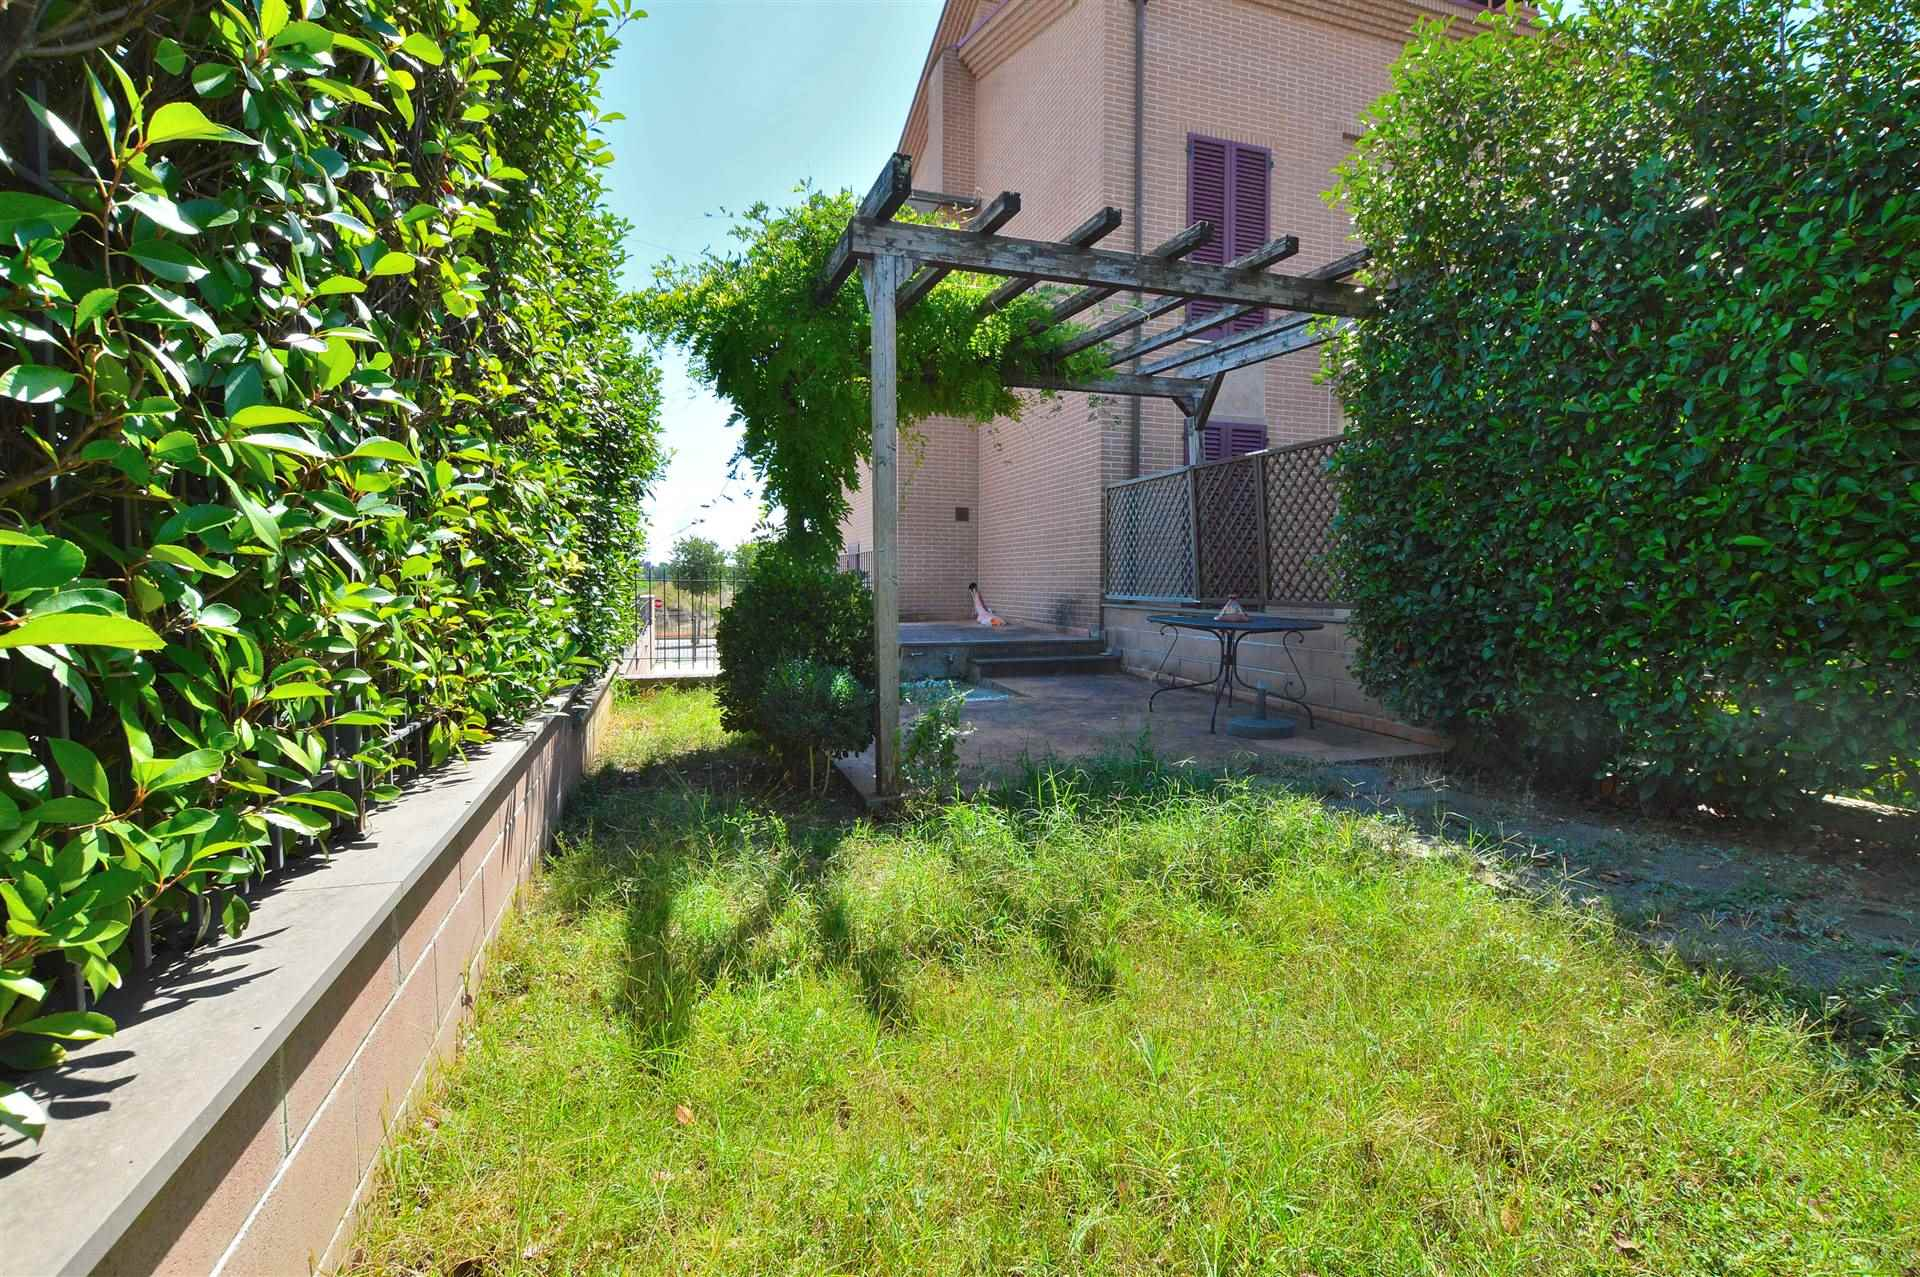 PONTE A TRESSA, MONTERONI D'ARBIA, Apartment for sale, Excellent Condition, Heating Individual heating system, Energetic class: G, Epi: 175 kwh/m2 year, placed at 1° on 2, composed by: 3 Rooms,